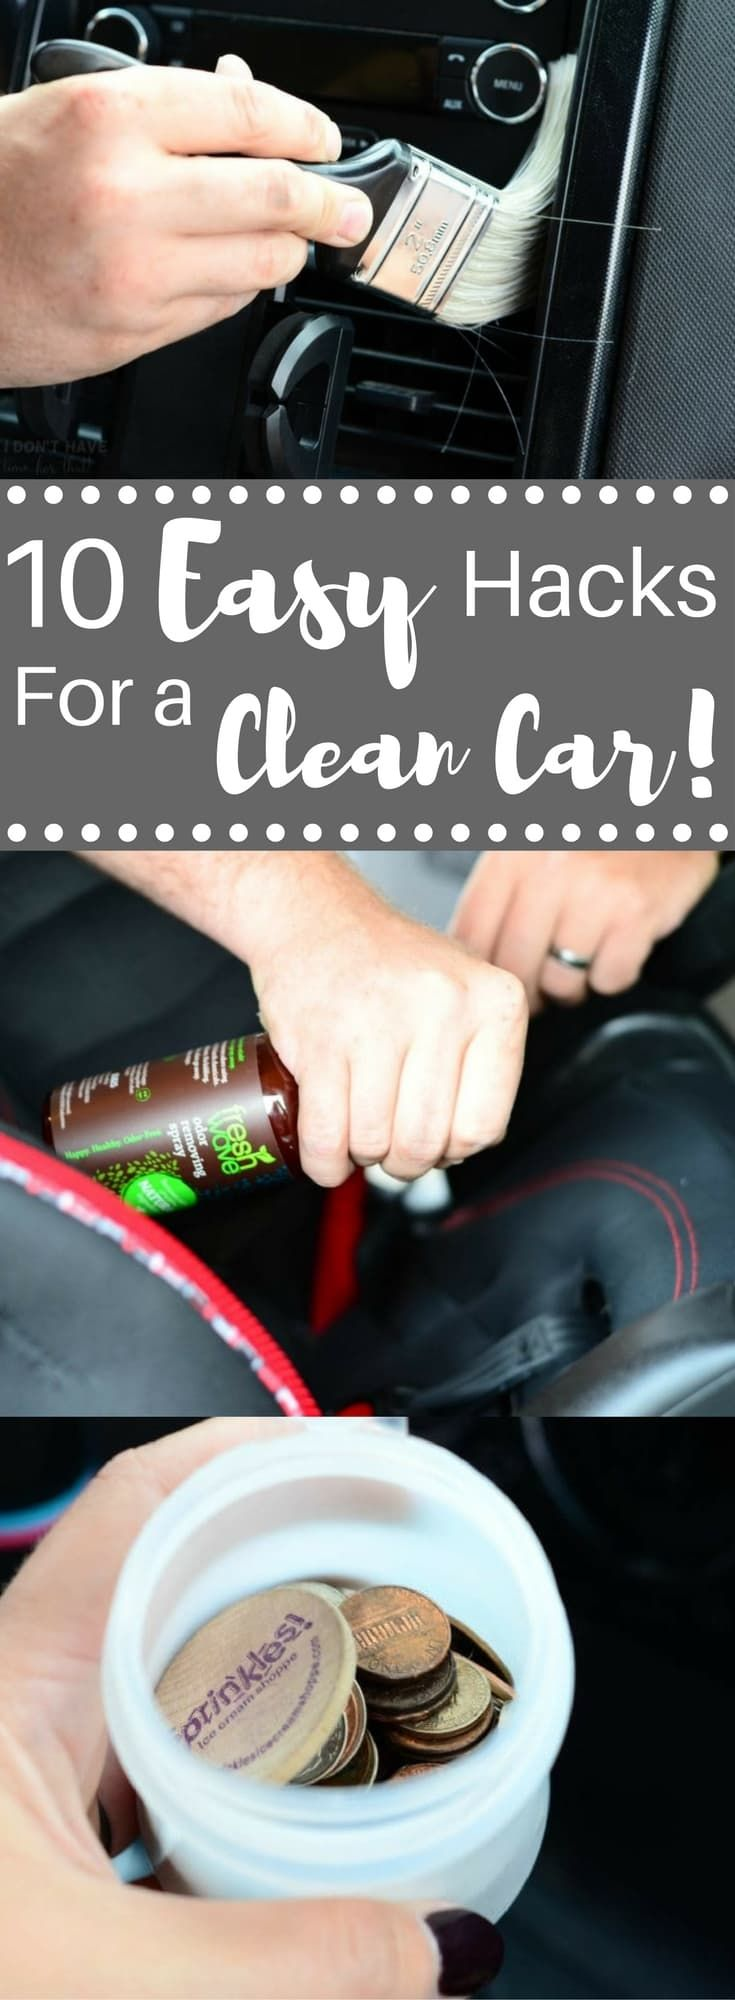 Easy hacks for a clean car